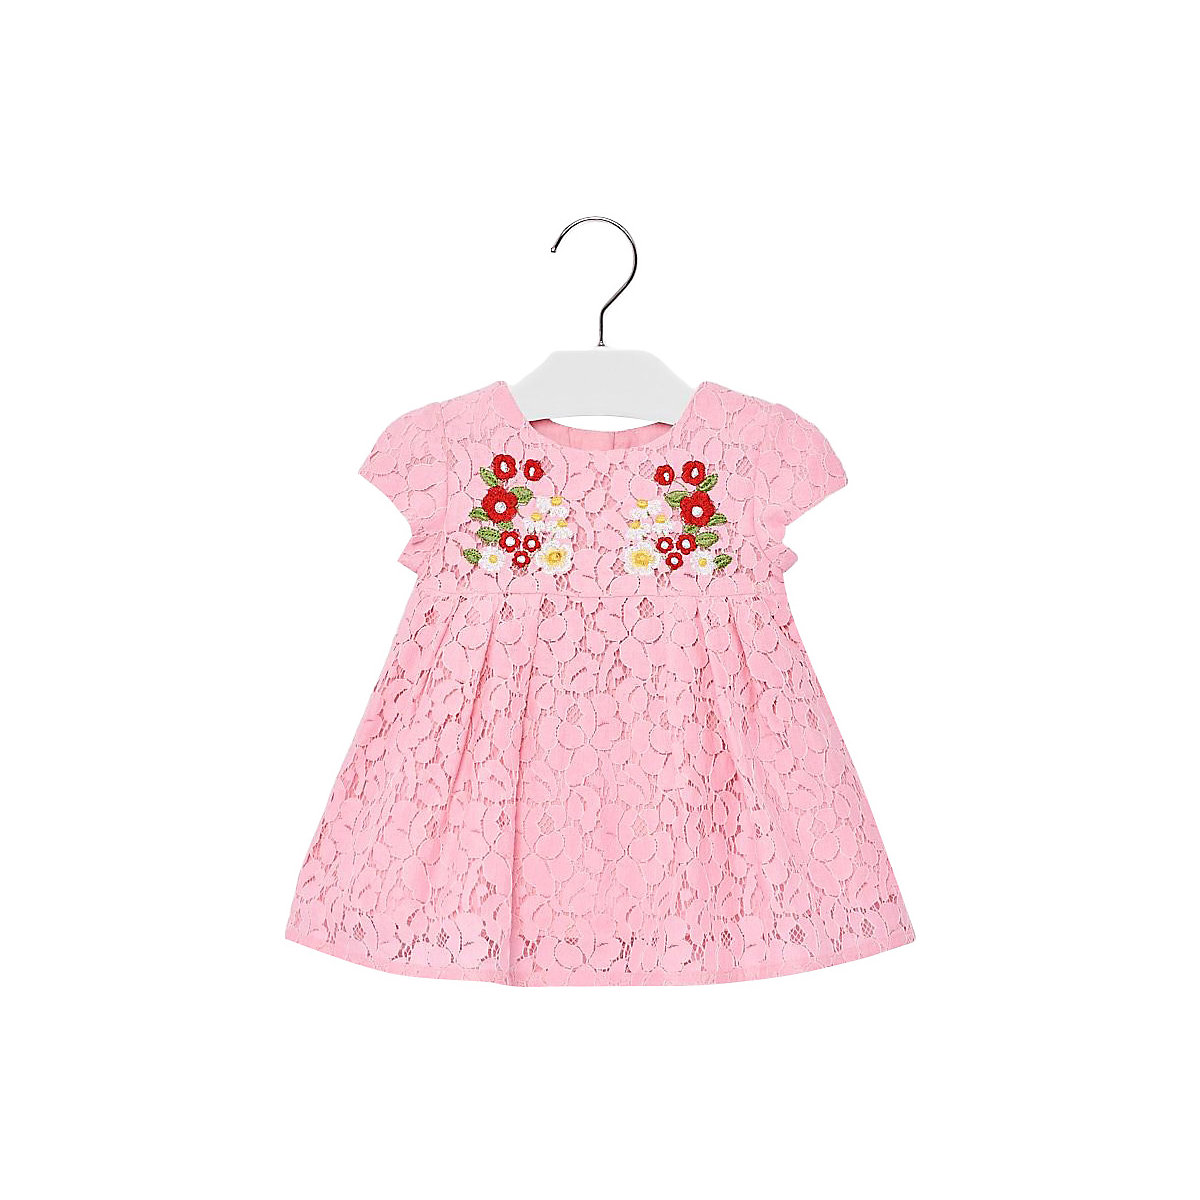 MAYORAL Dresses 10691731 Girl Children fitted pleated skirt Pink Cotton Casual Print Knee-Length Short Sleeve